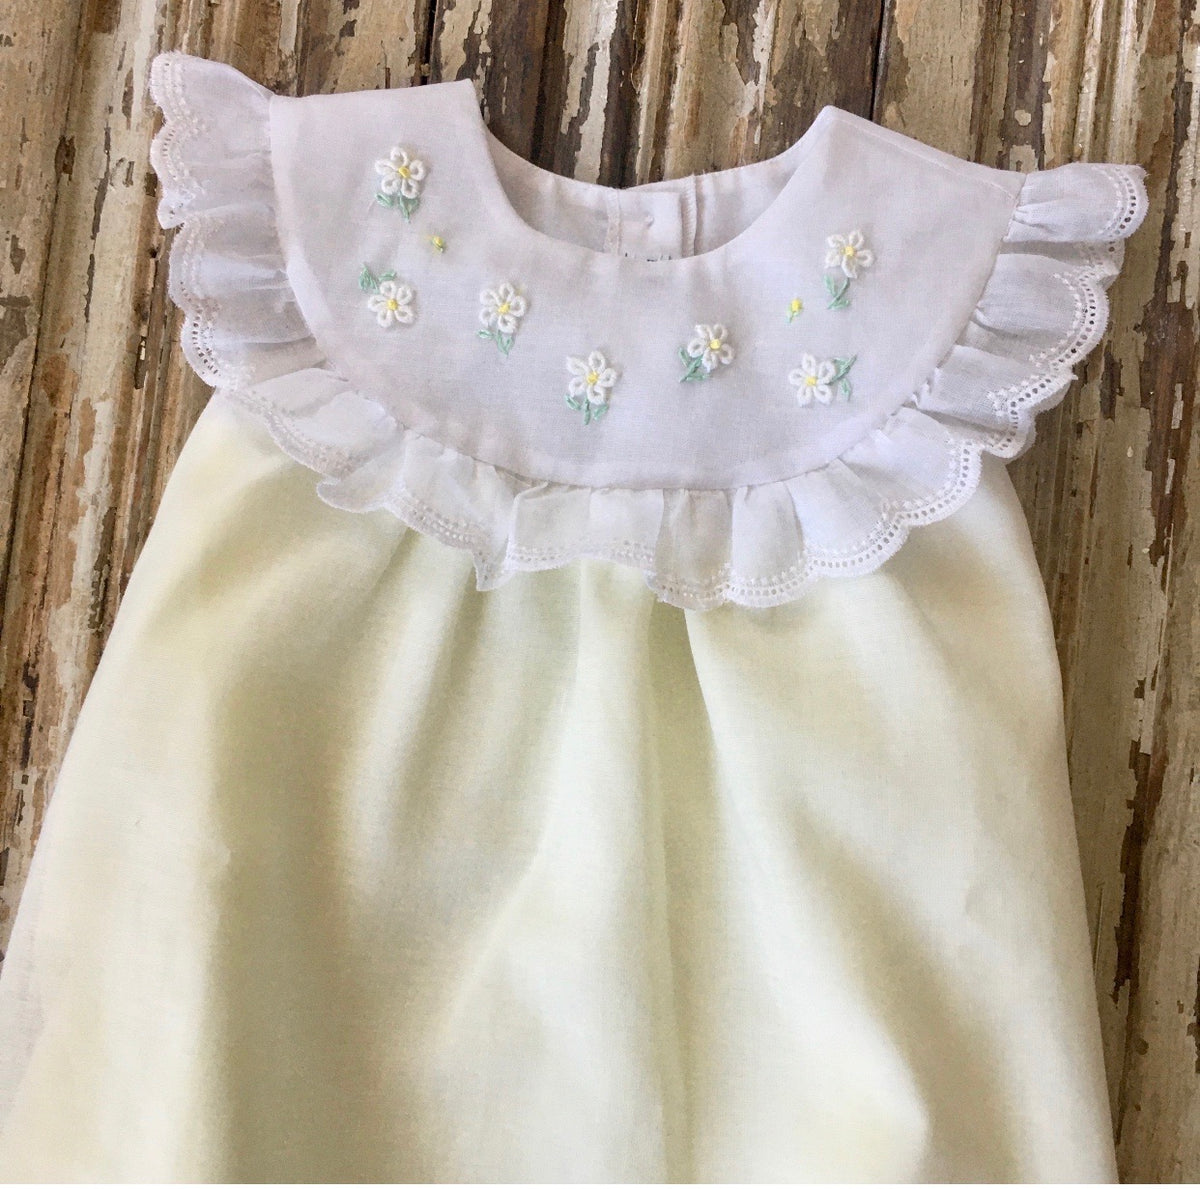 Bib Daisy Dye Soft Yellow Dress